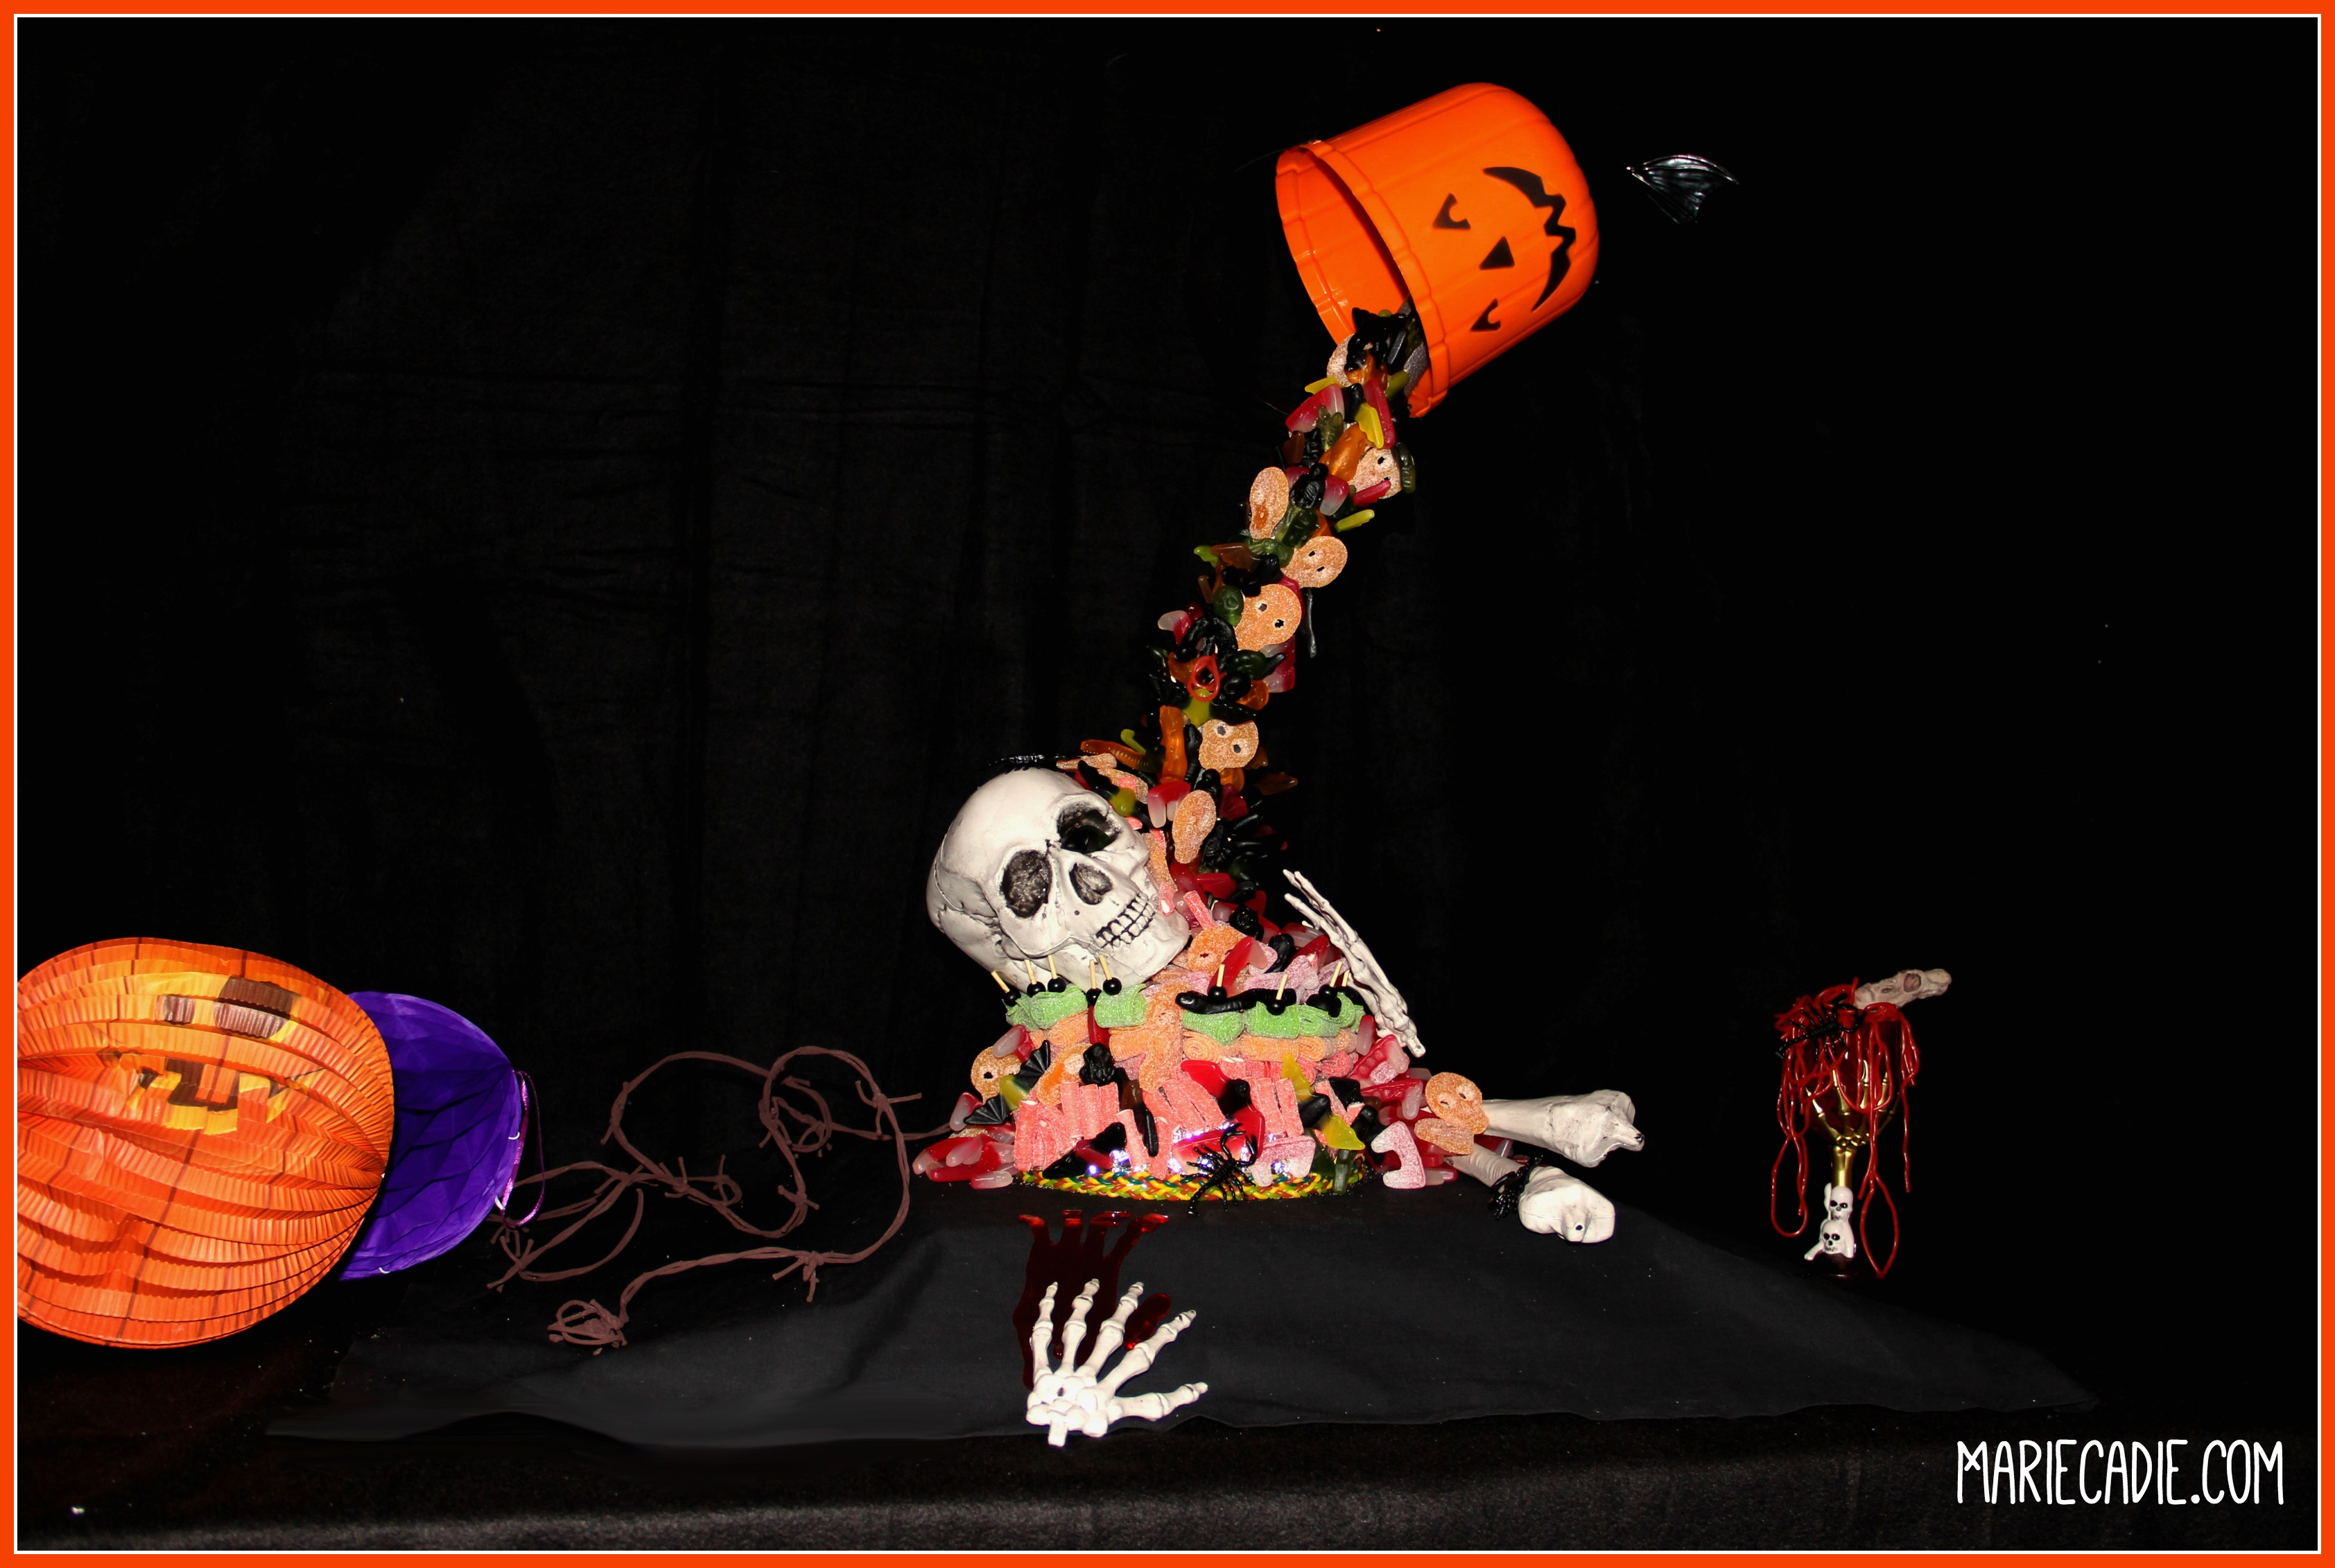 mariecadie-com-halloween-lutti-fun-anti-gravity-candy-cake_3